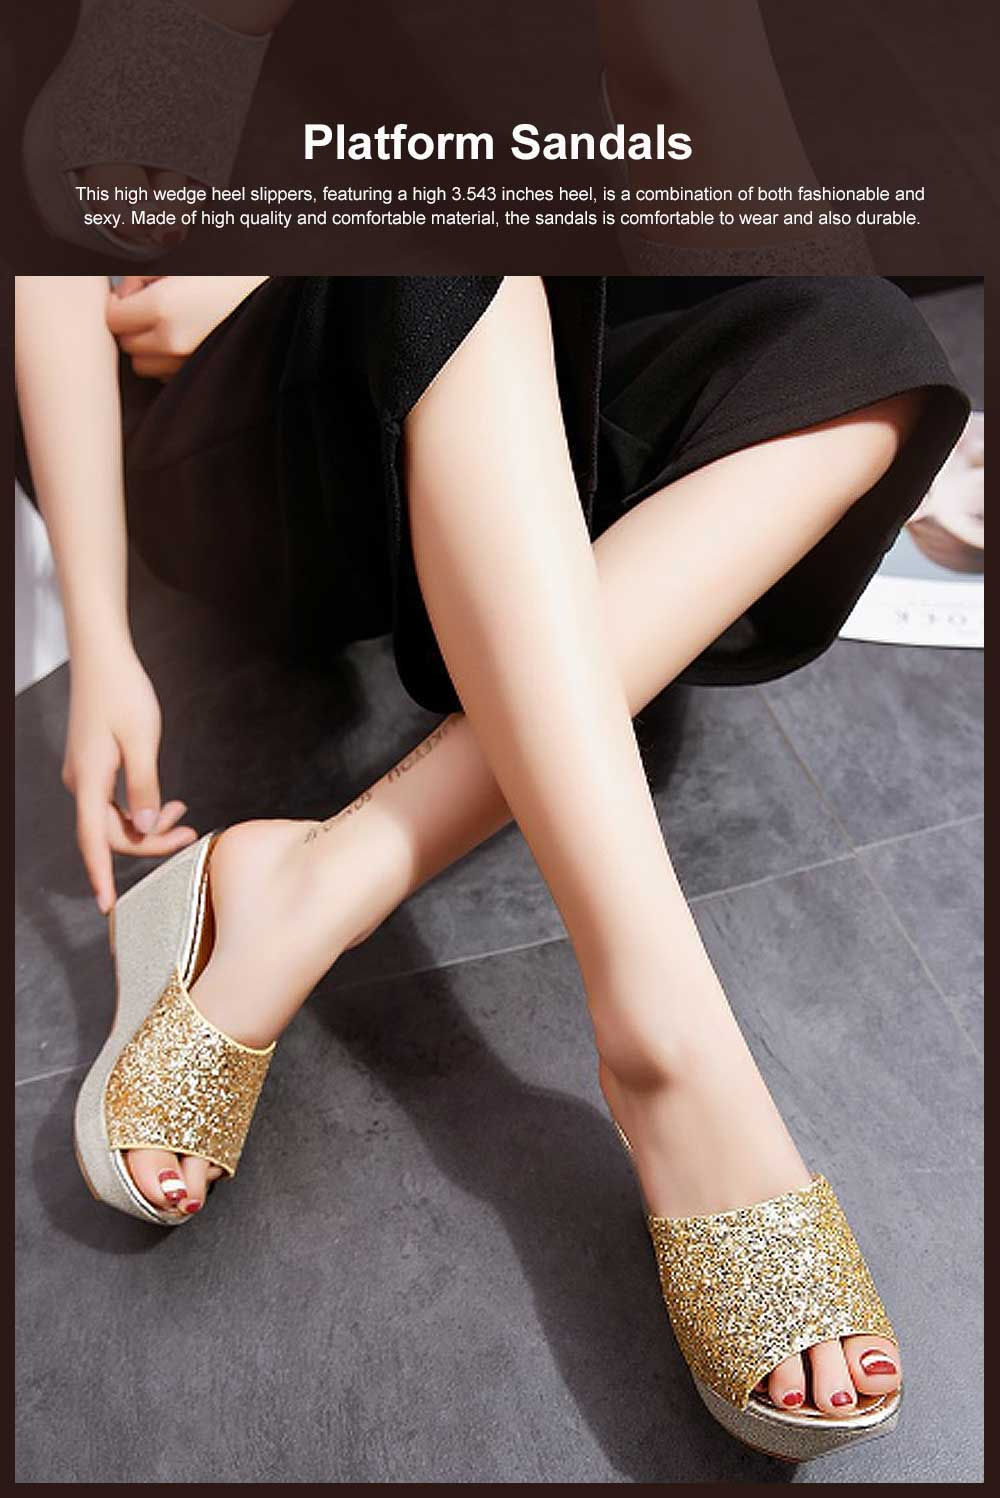 2019 Latest Platform Shoes in Vogue, Fashionable Glittering High Quality Wedge Heel Sandals with Tinsel 0